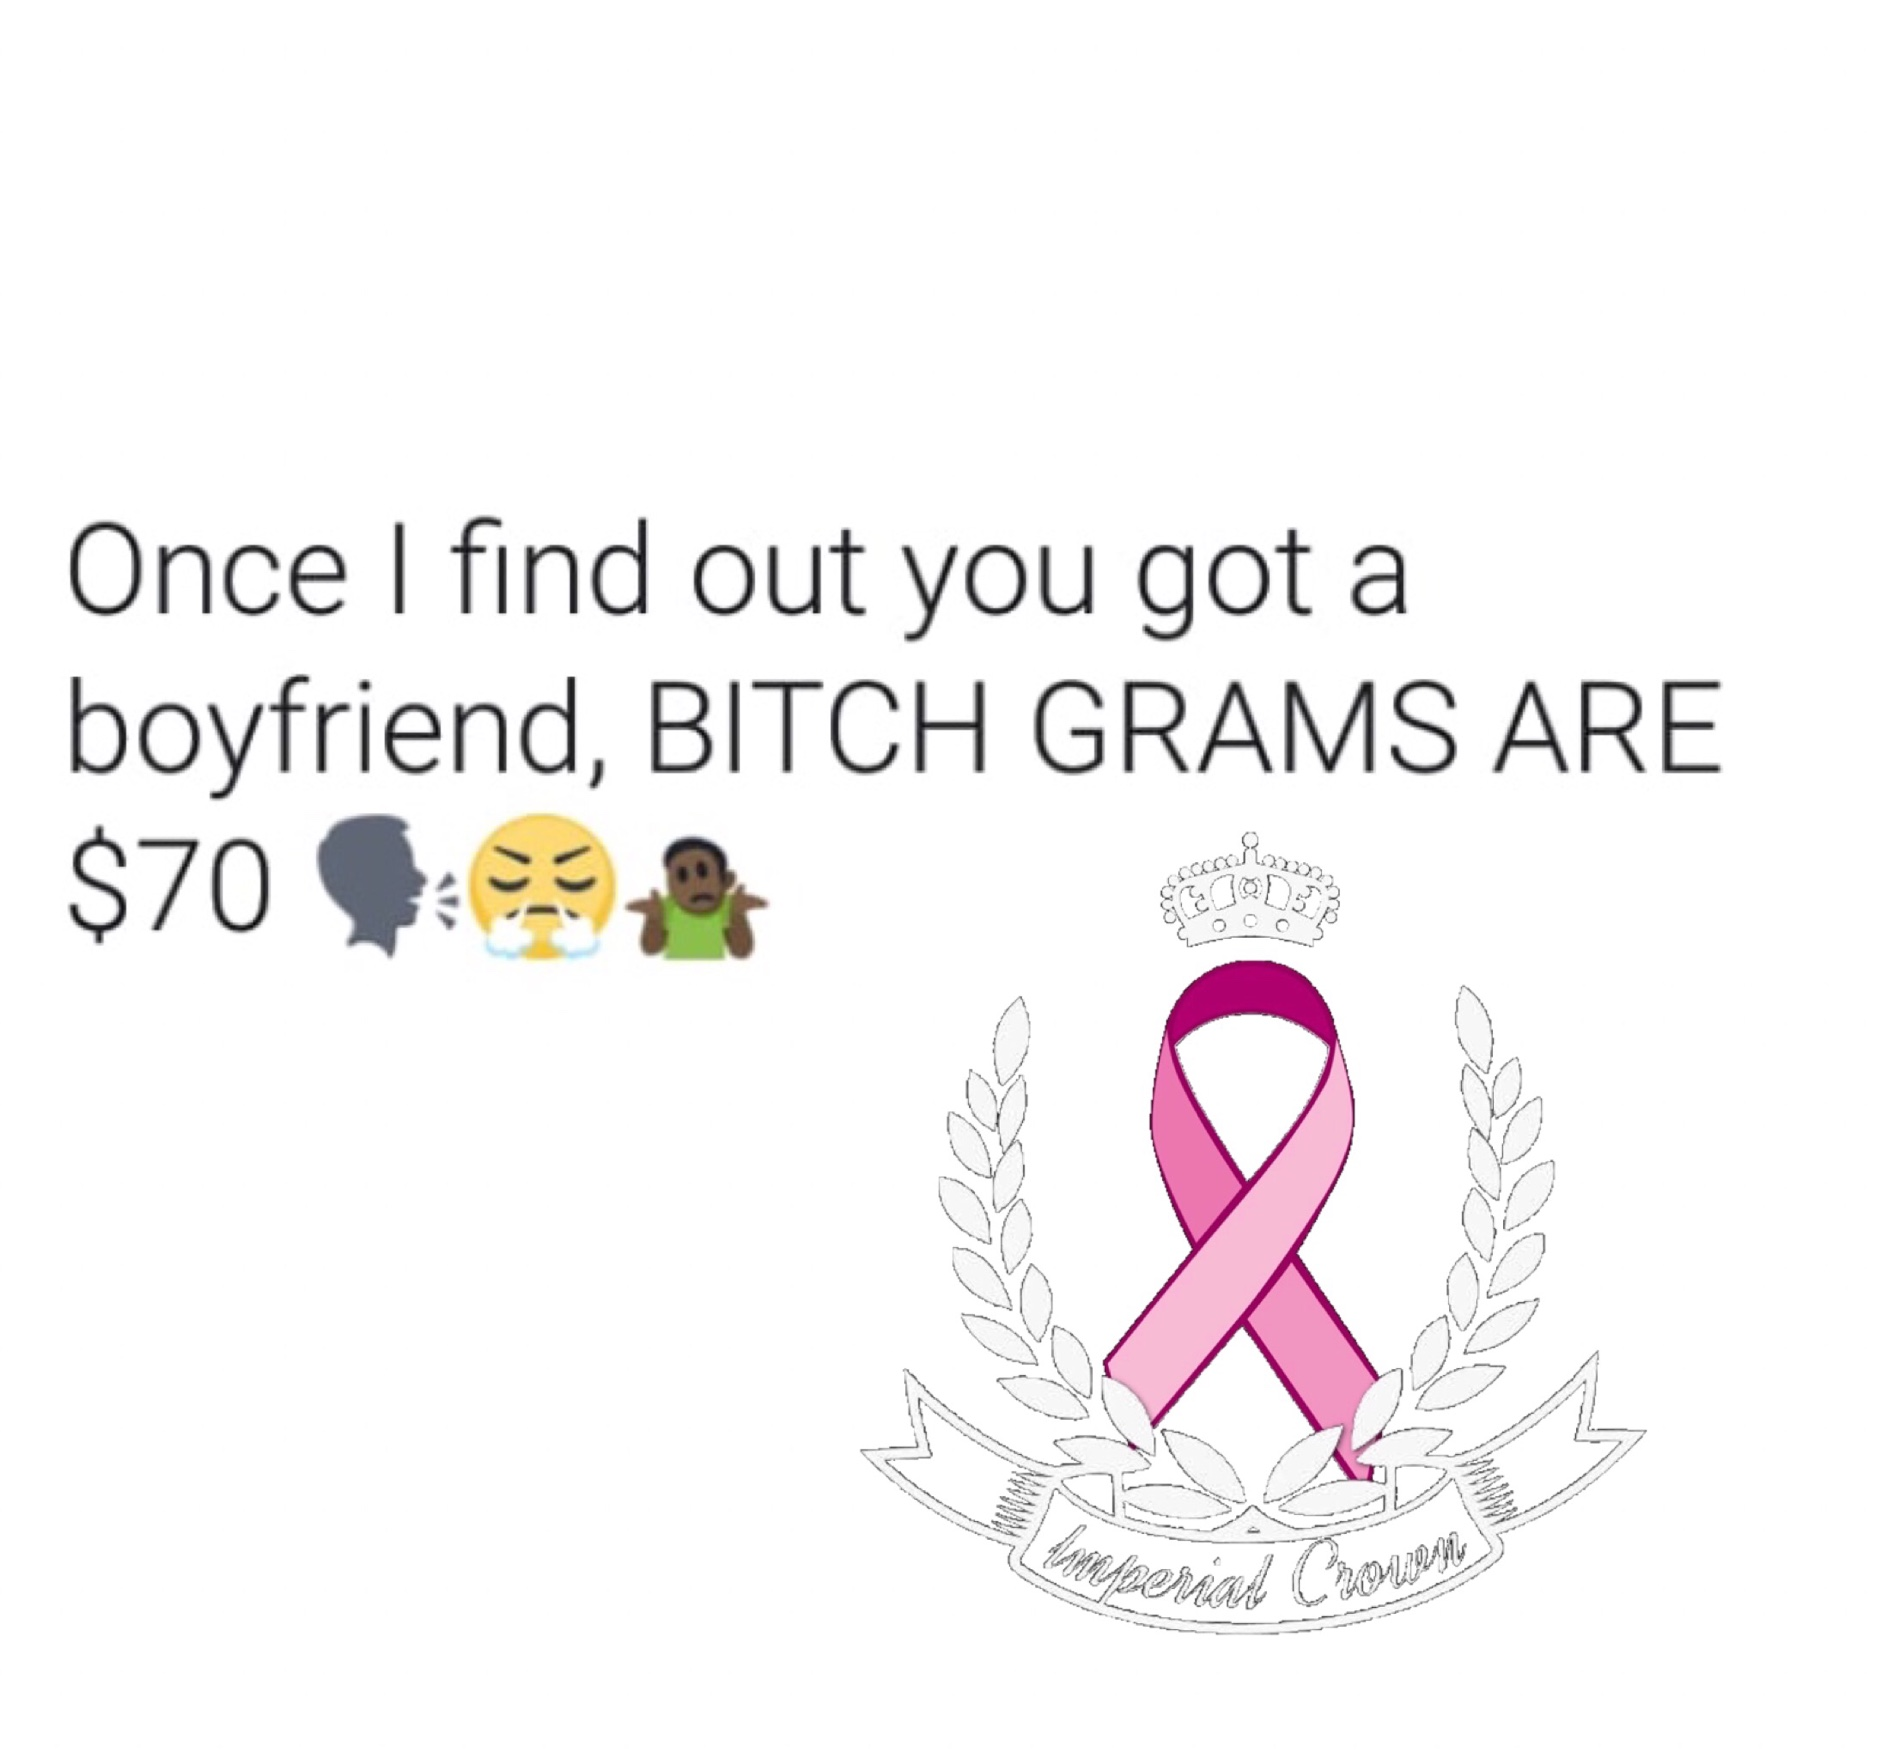 Once I find out you got a boyfriend BITCH grams are $70